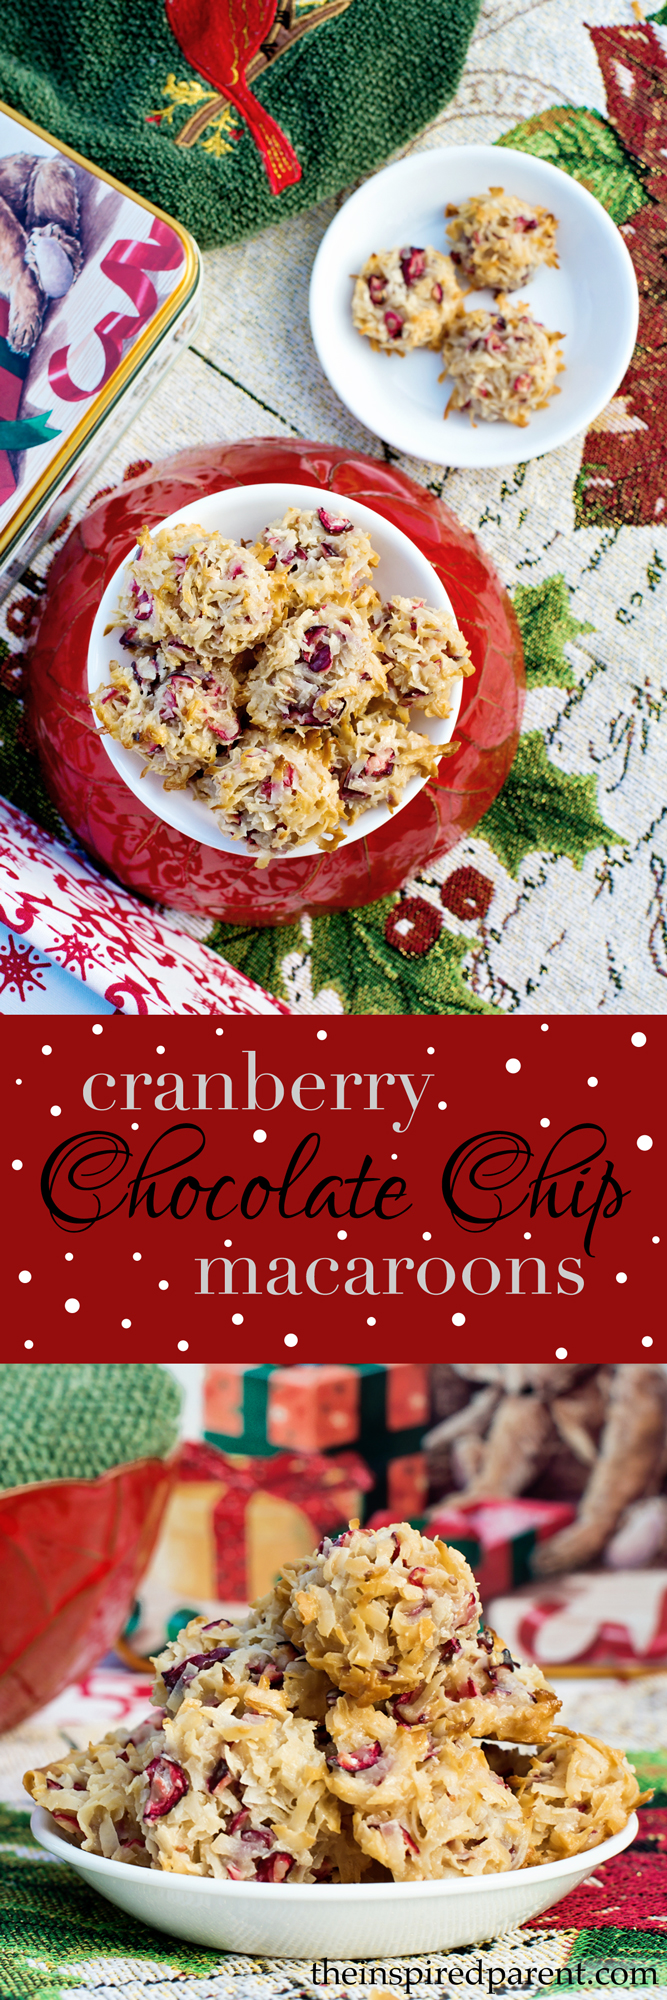 Cranberry Chocolate Chip Macaroons | theinspiredparent.com